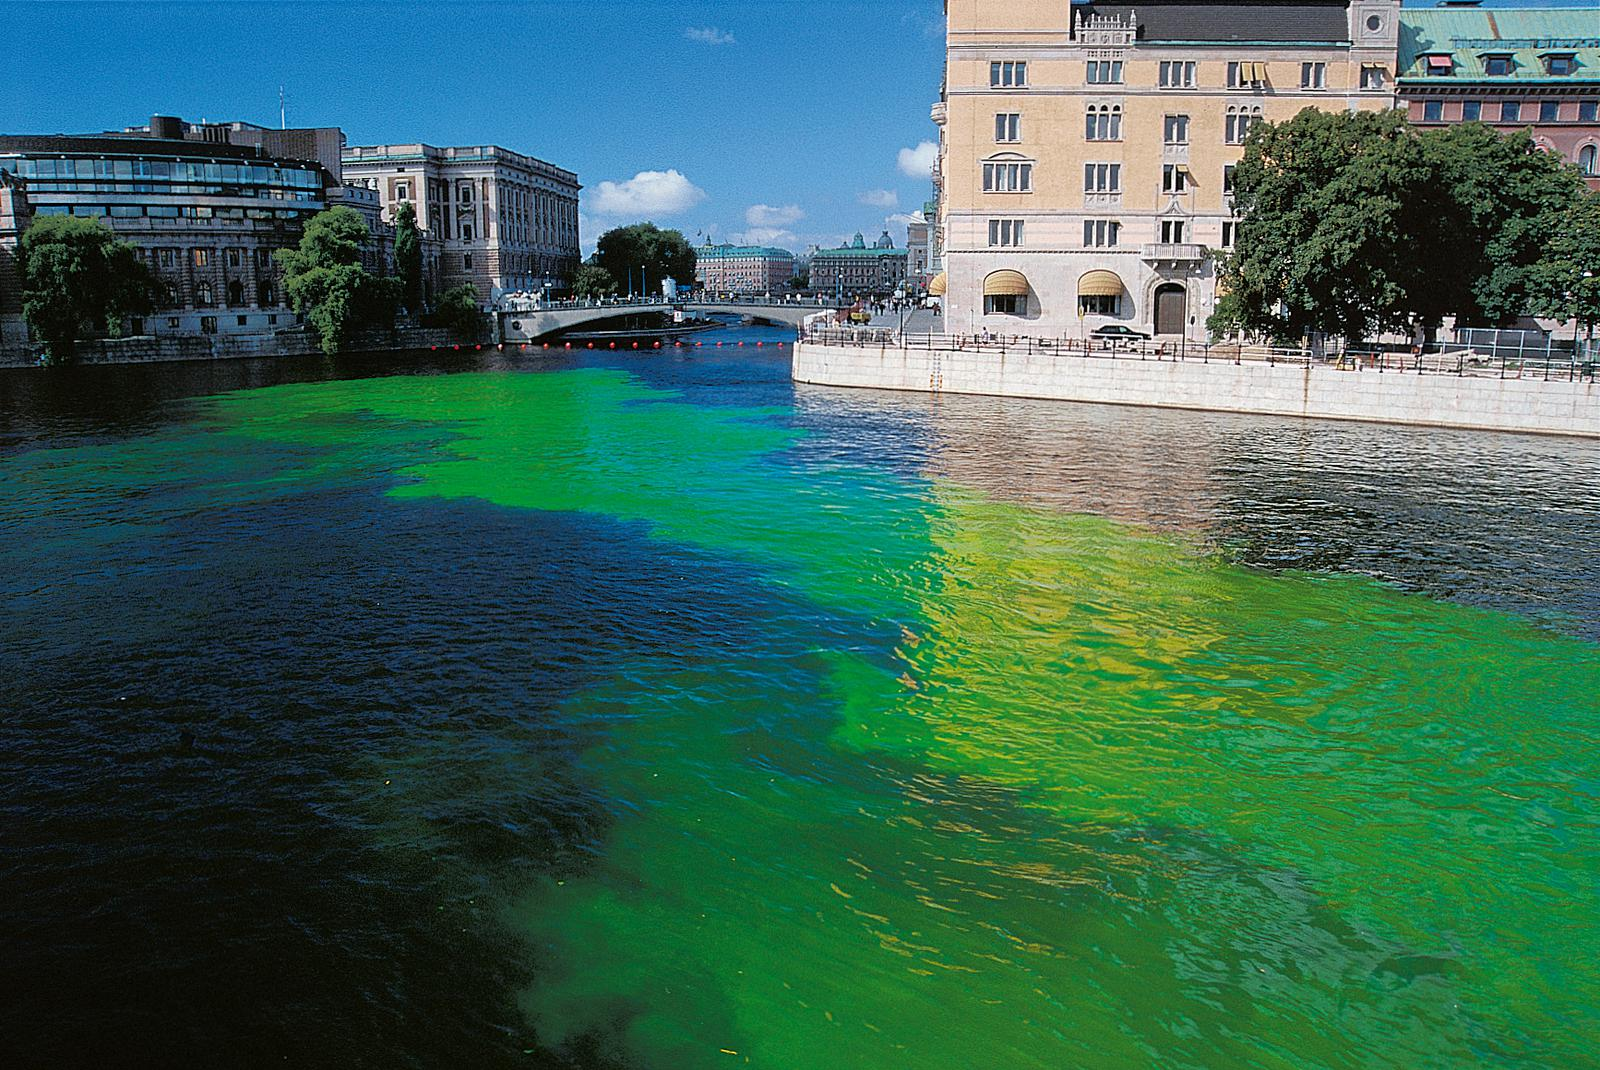 When Olafur Eliasson dyed the rivers green